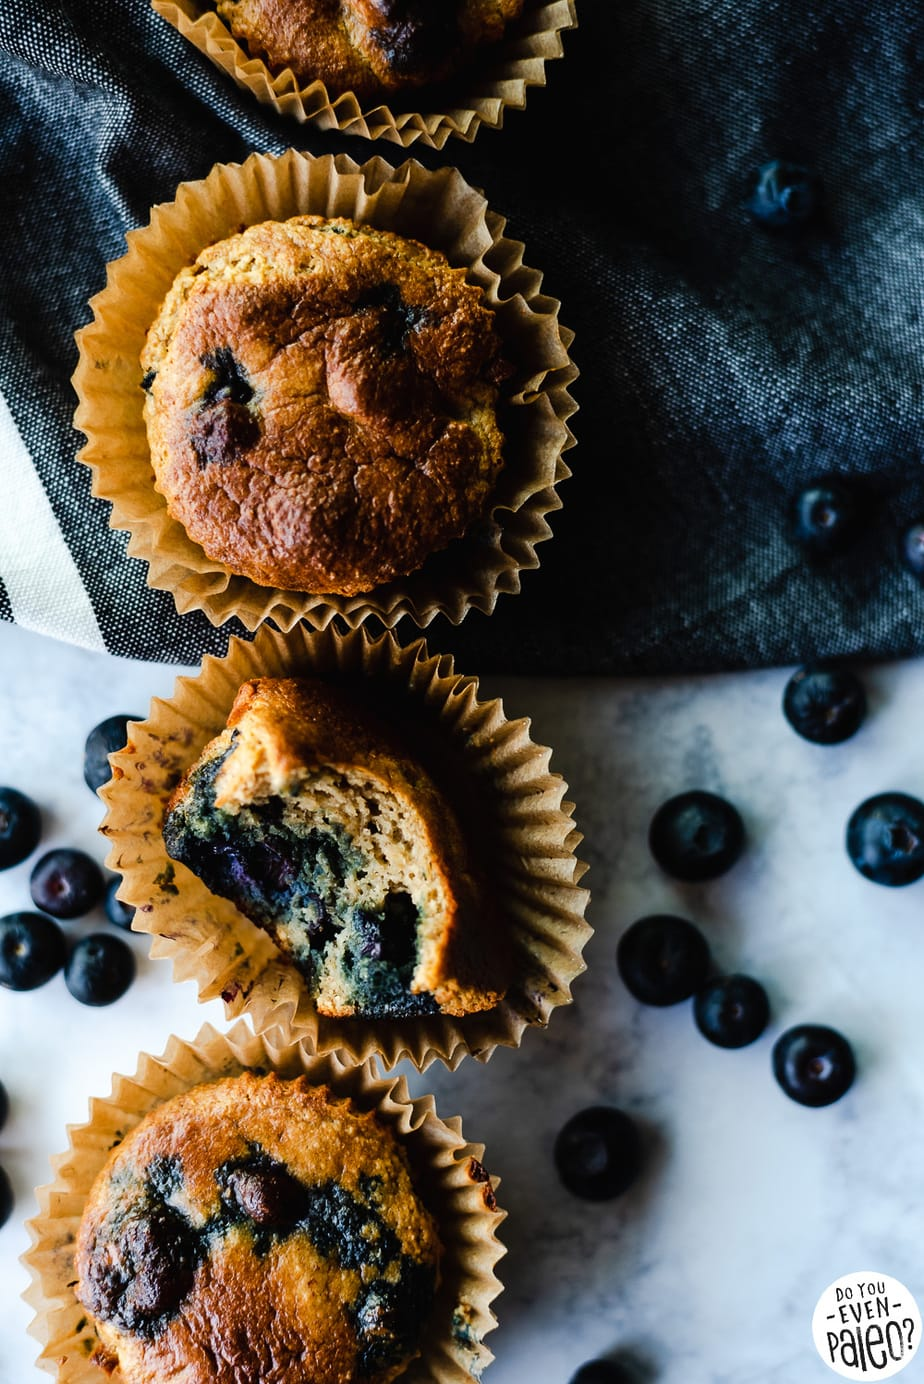 Picture for paleo blueberry protein muffin recipe with four muffins, linens, and scattered blueberries.